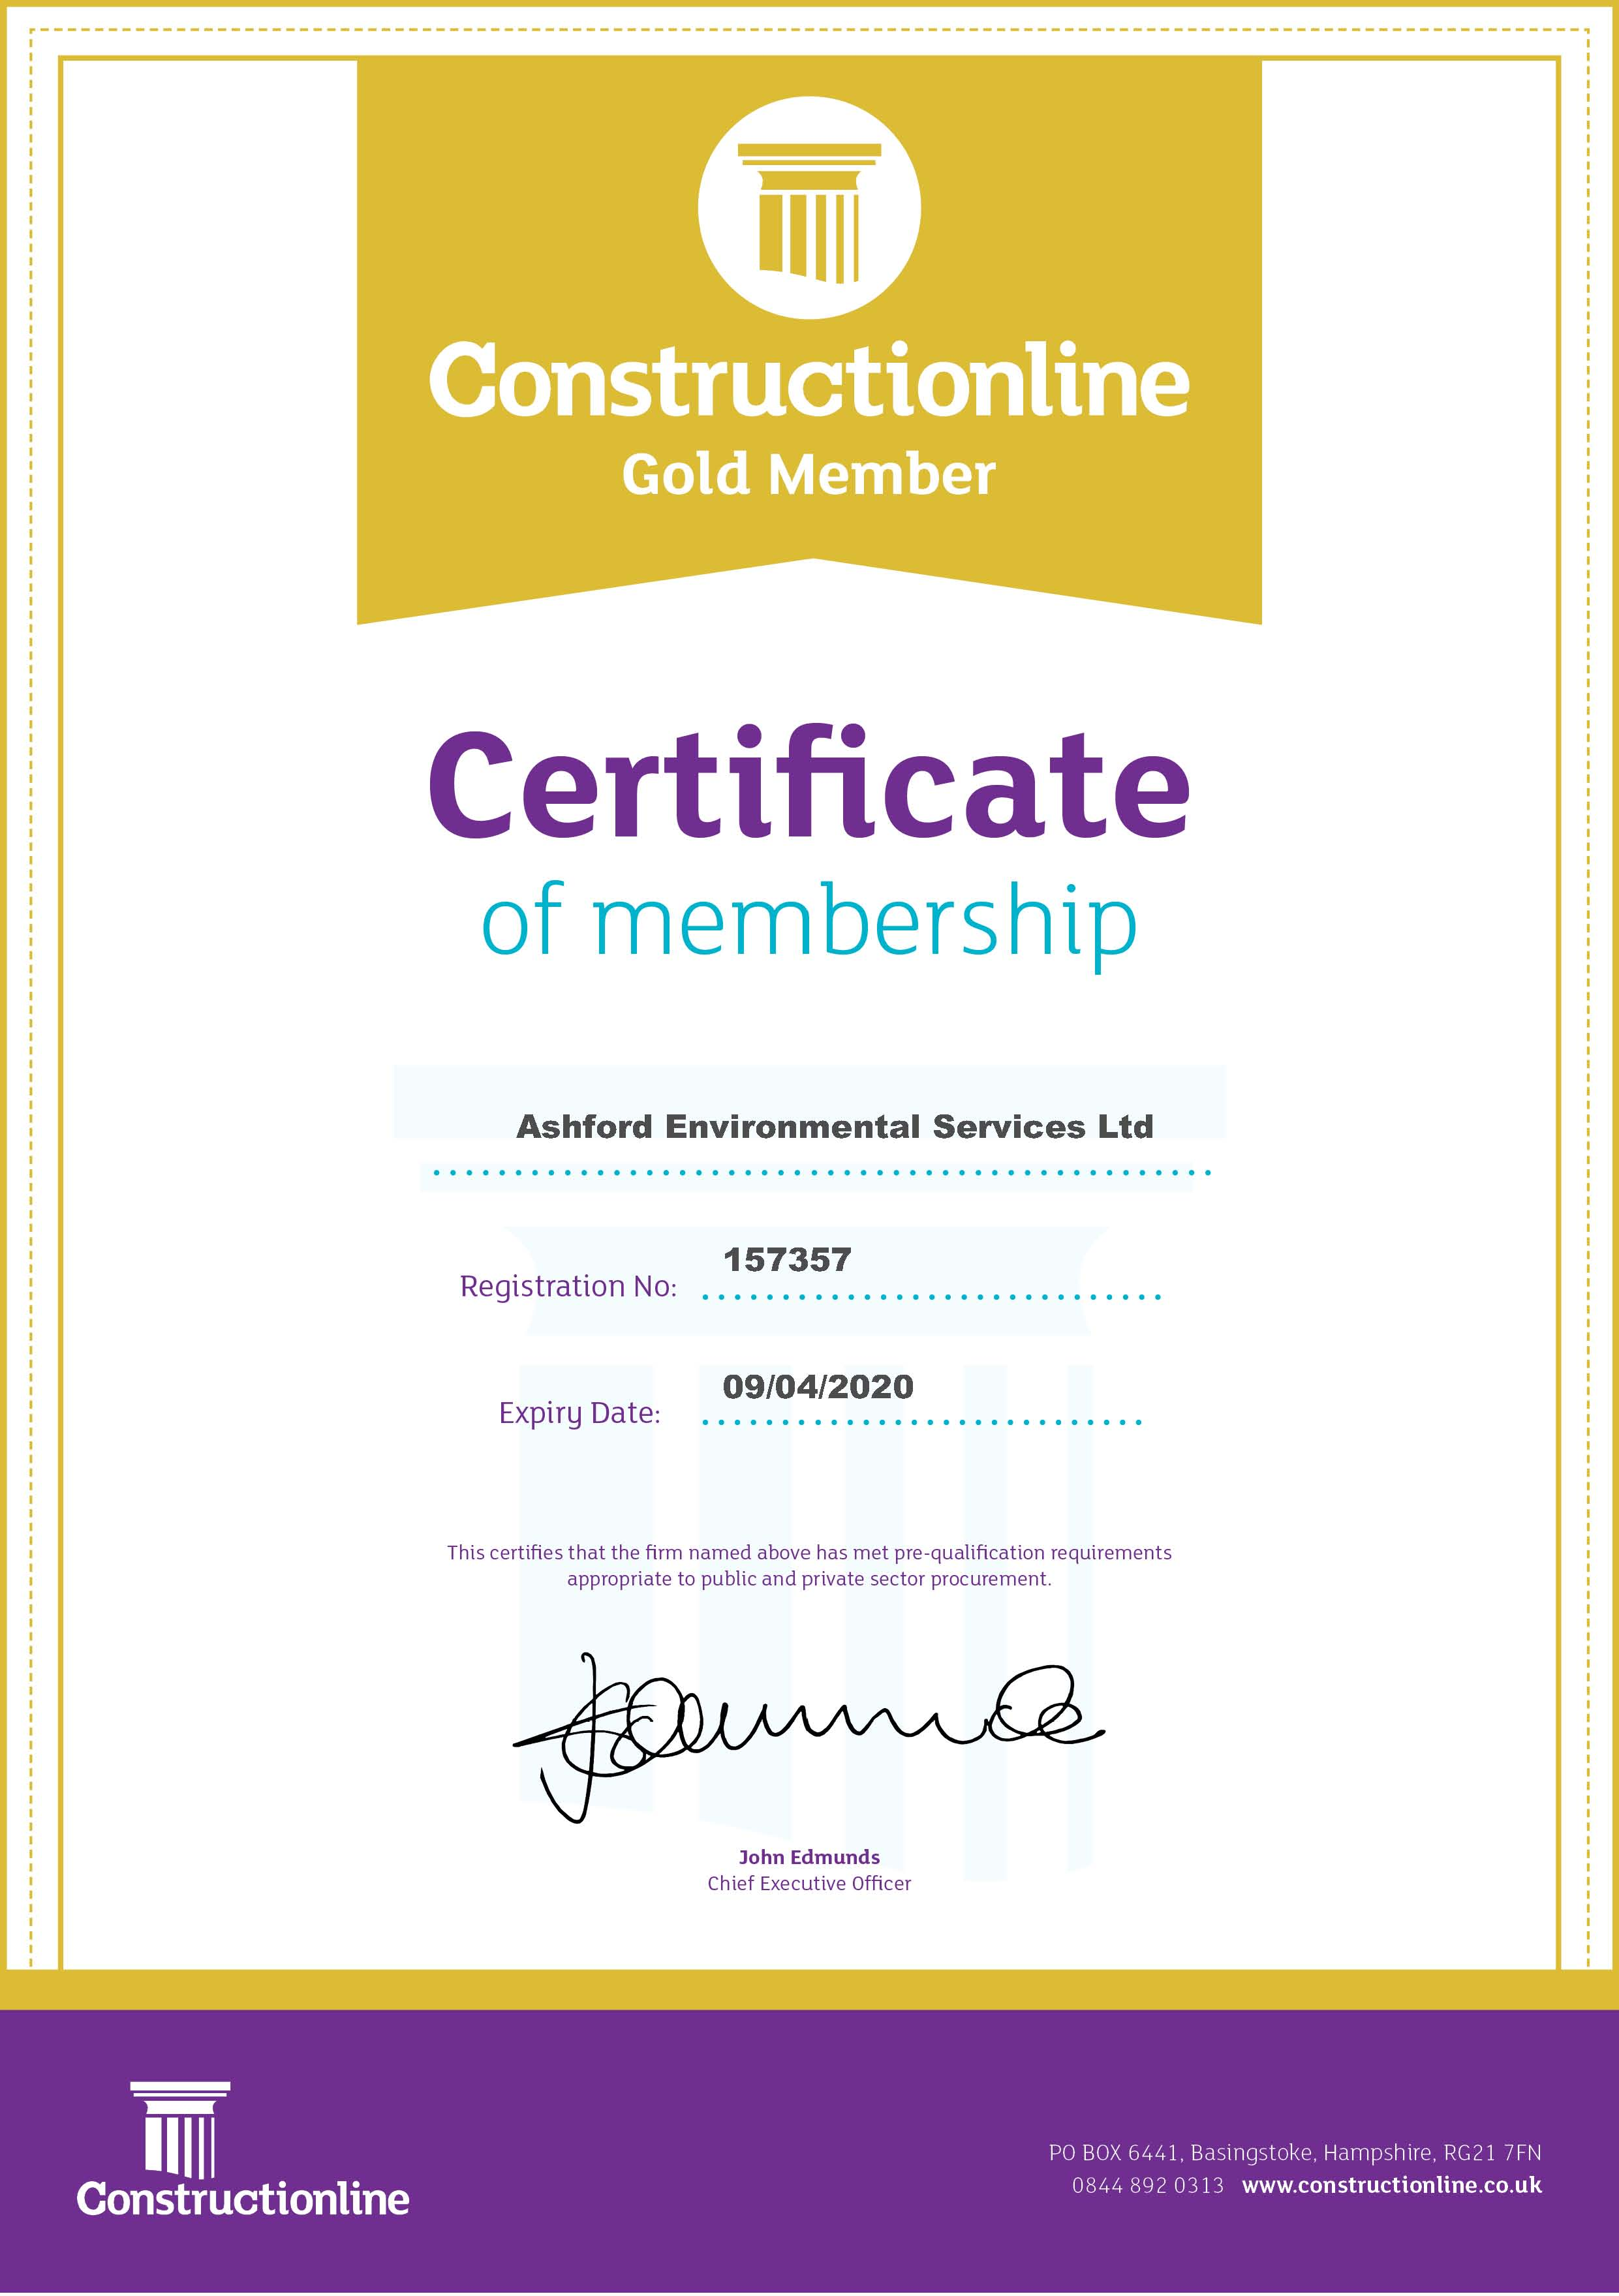 AES Constructionline Gold Certificate May 2019